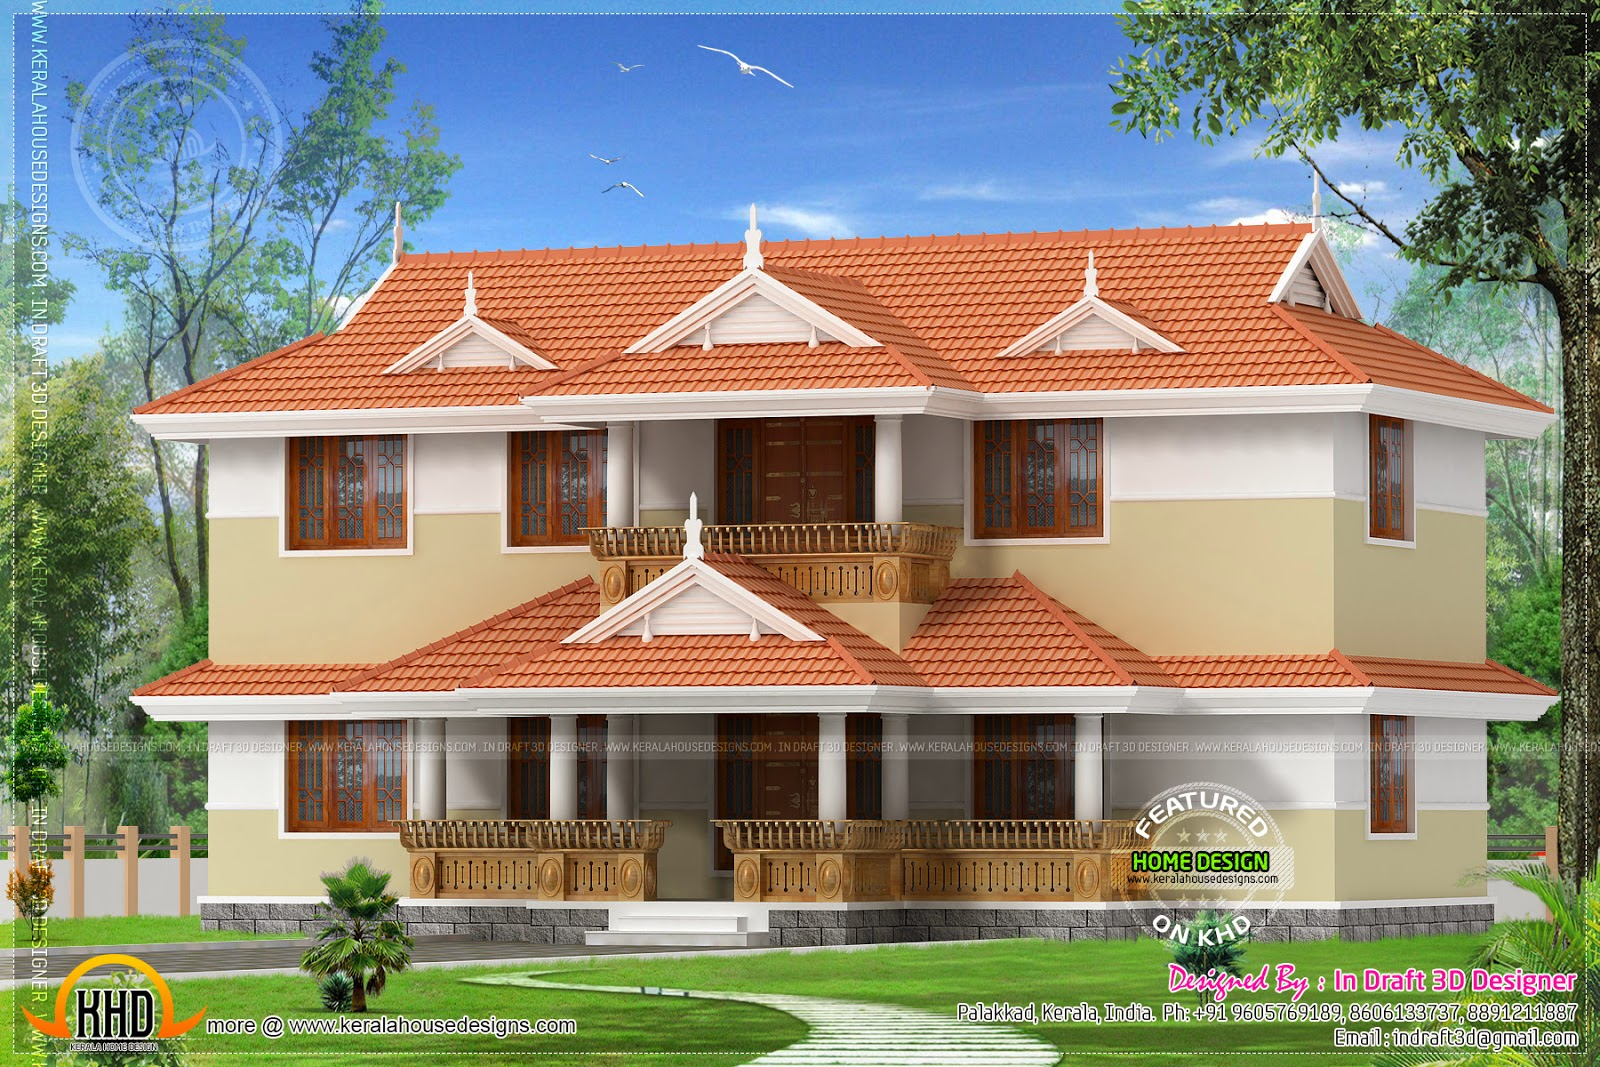 4 bed room traditional kerala home with courtyard kerala for Kerala traditional home plans